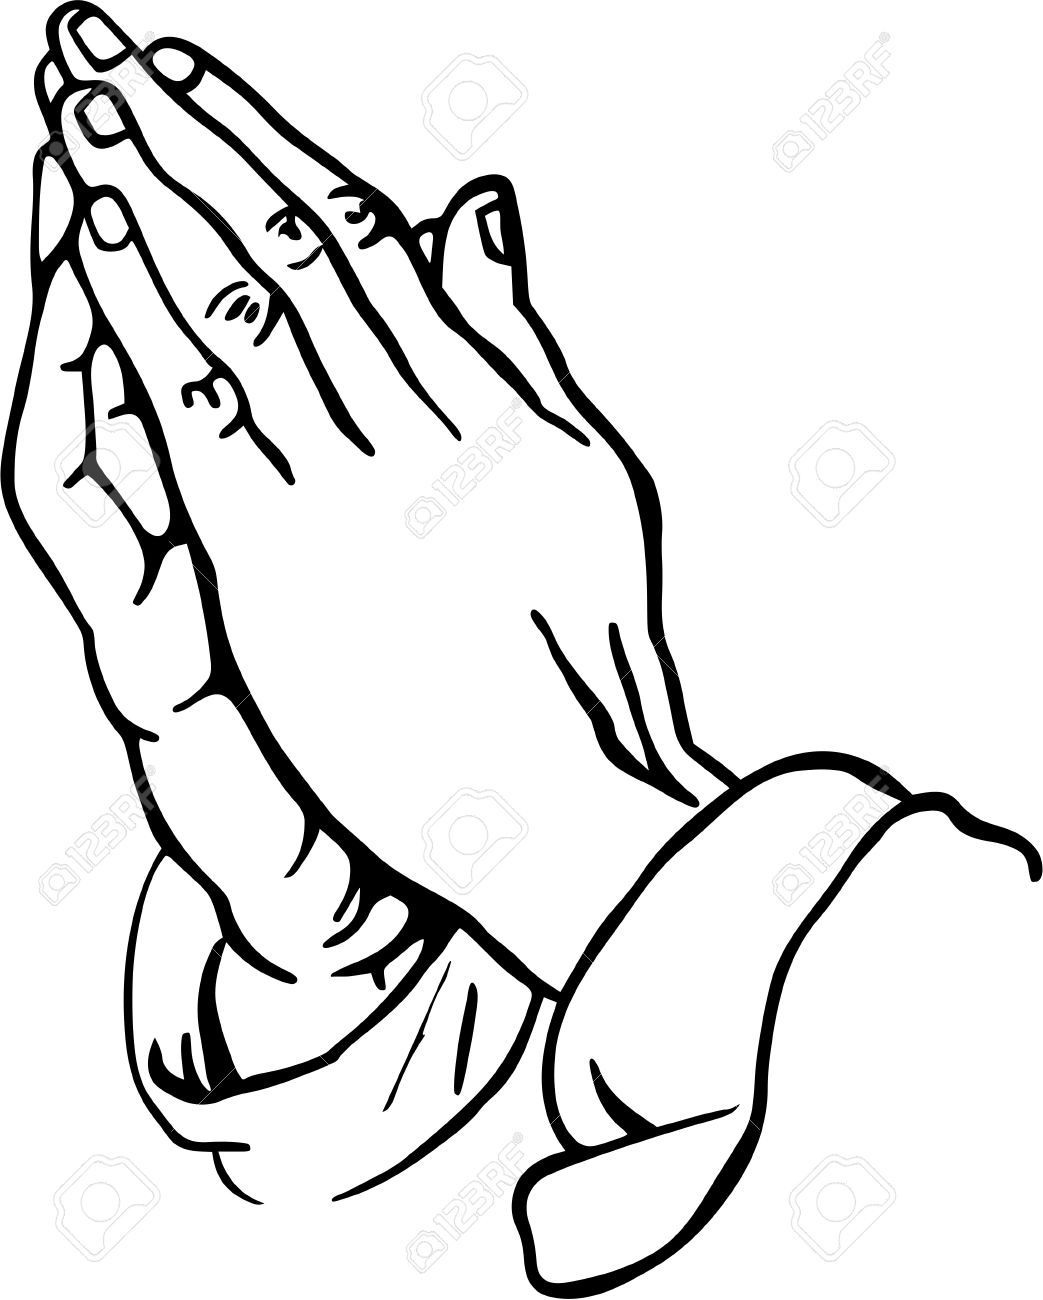 Praying Hands Clipart Stock Photo Picture And Royalty